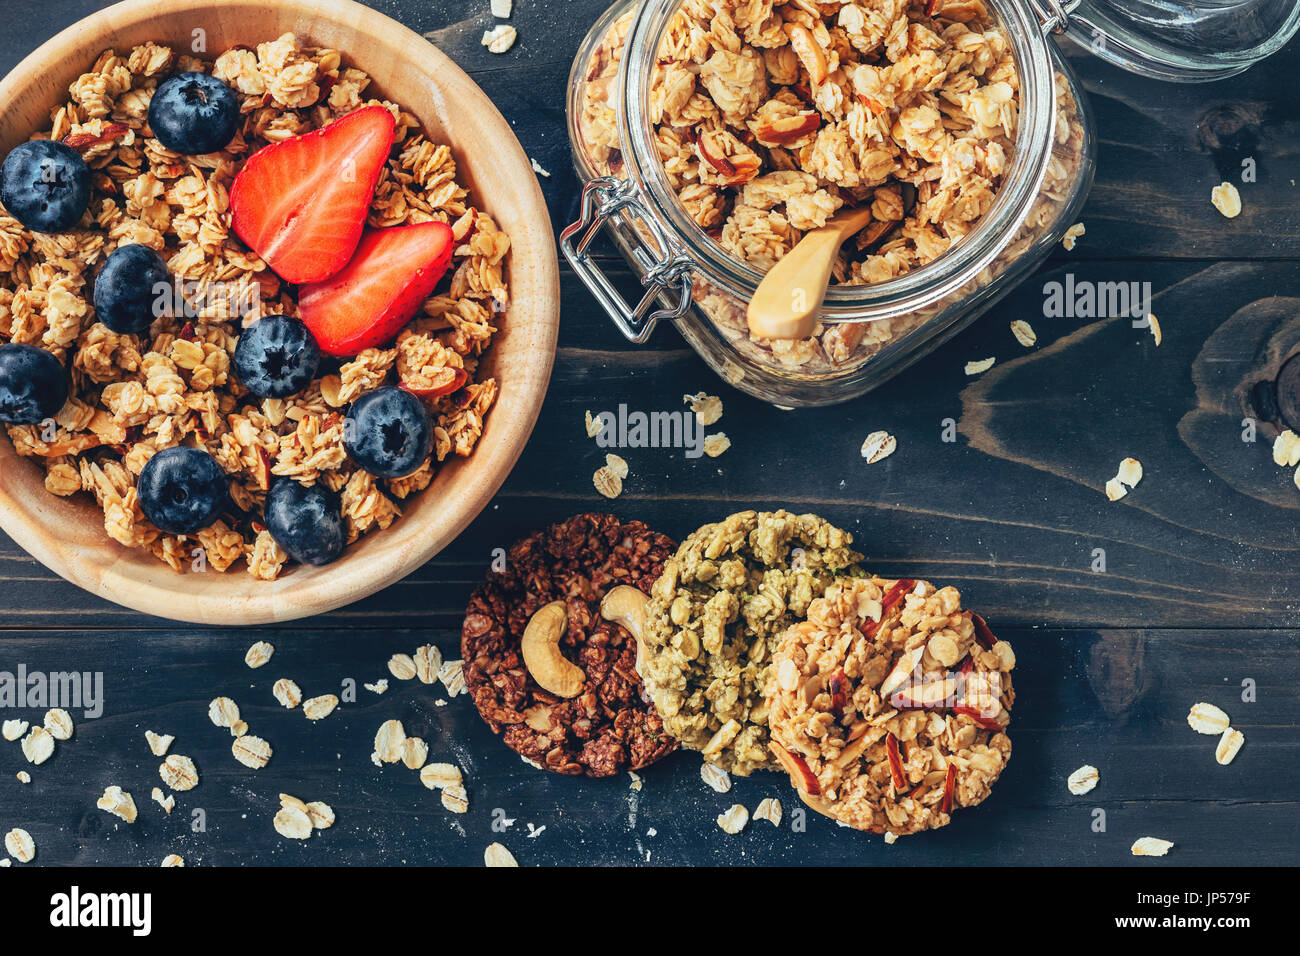 Homemade granola and fresh berries on wood table with space. - Stock Image